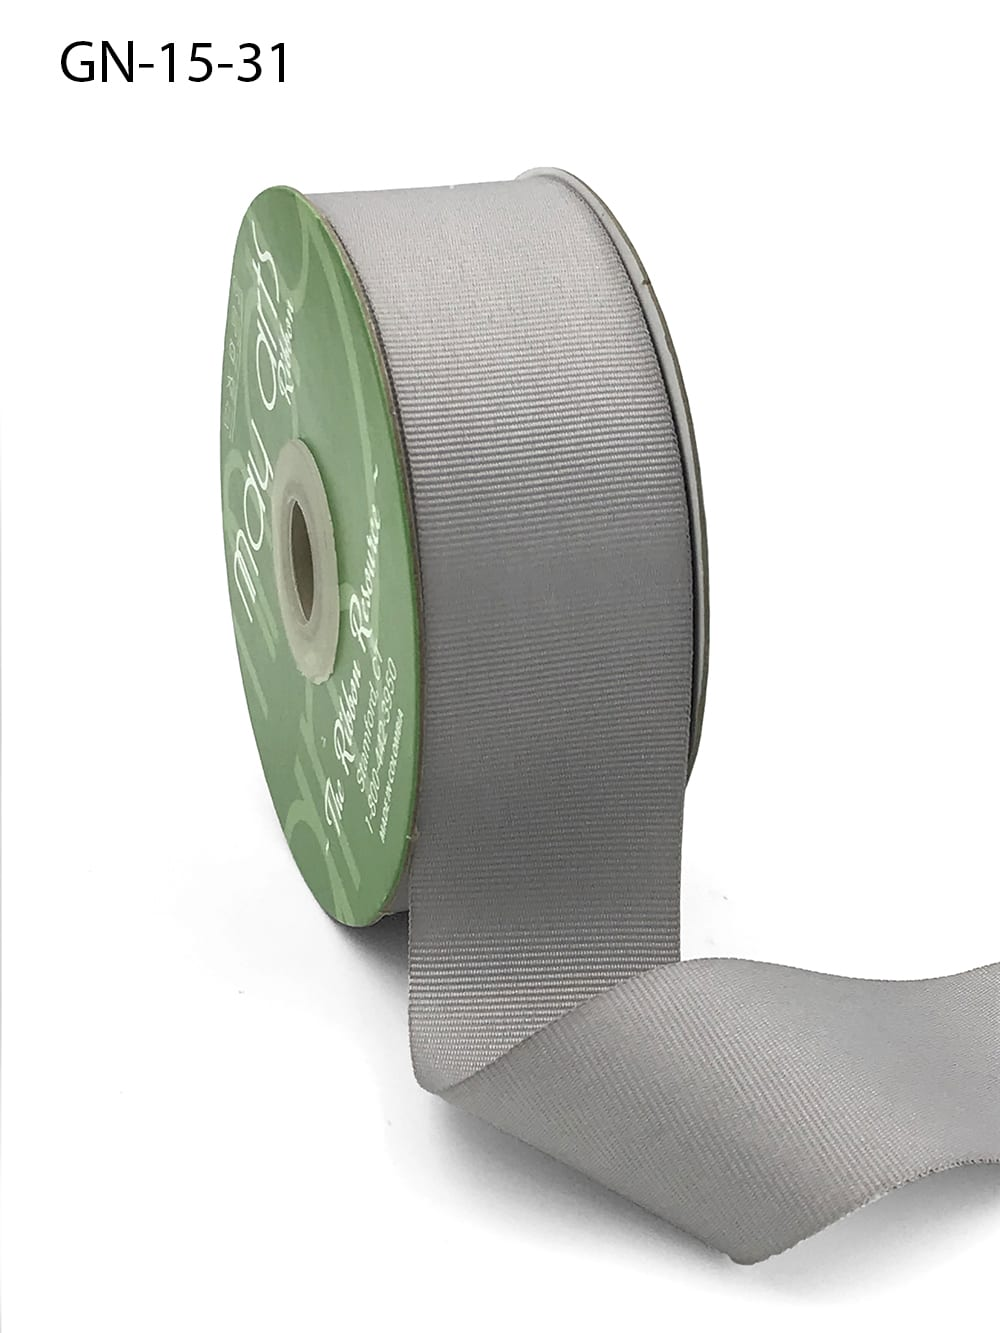 1.5 Inch Light-Weight Flat Grosgrain Ribbon with Woven Edge - GN-15-31 Silver